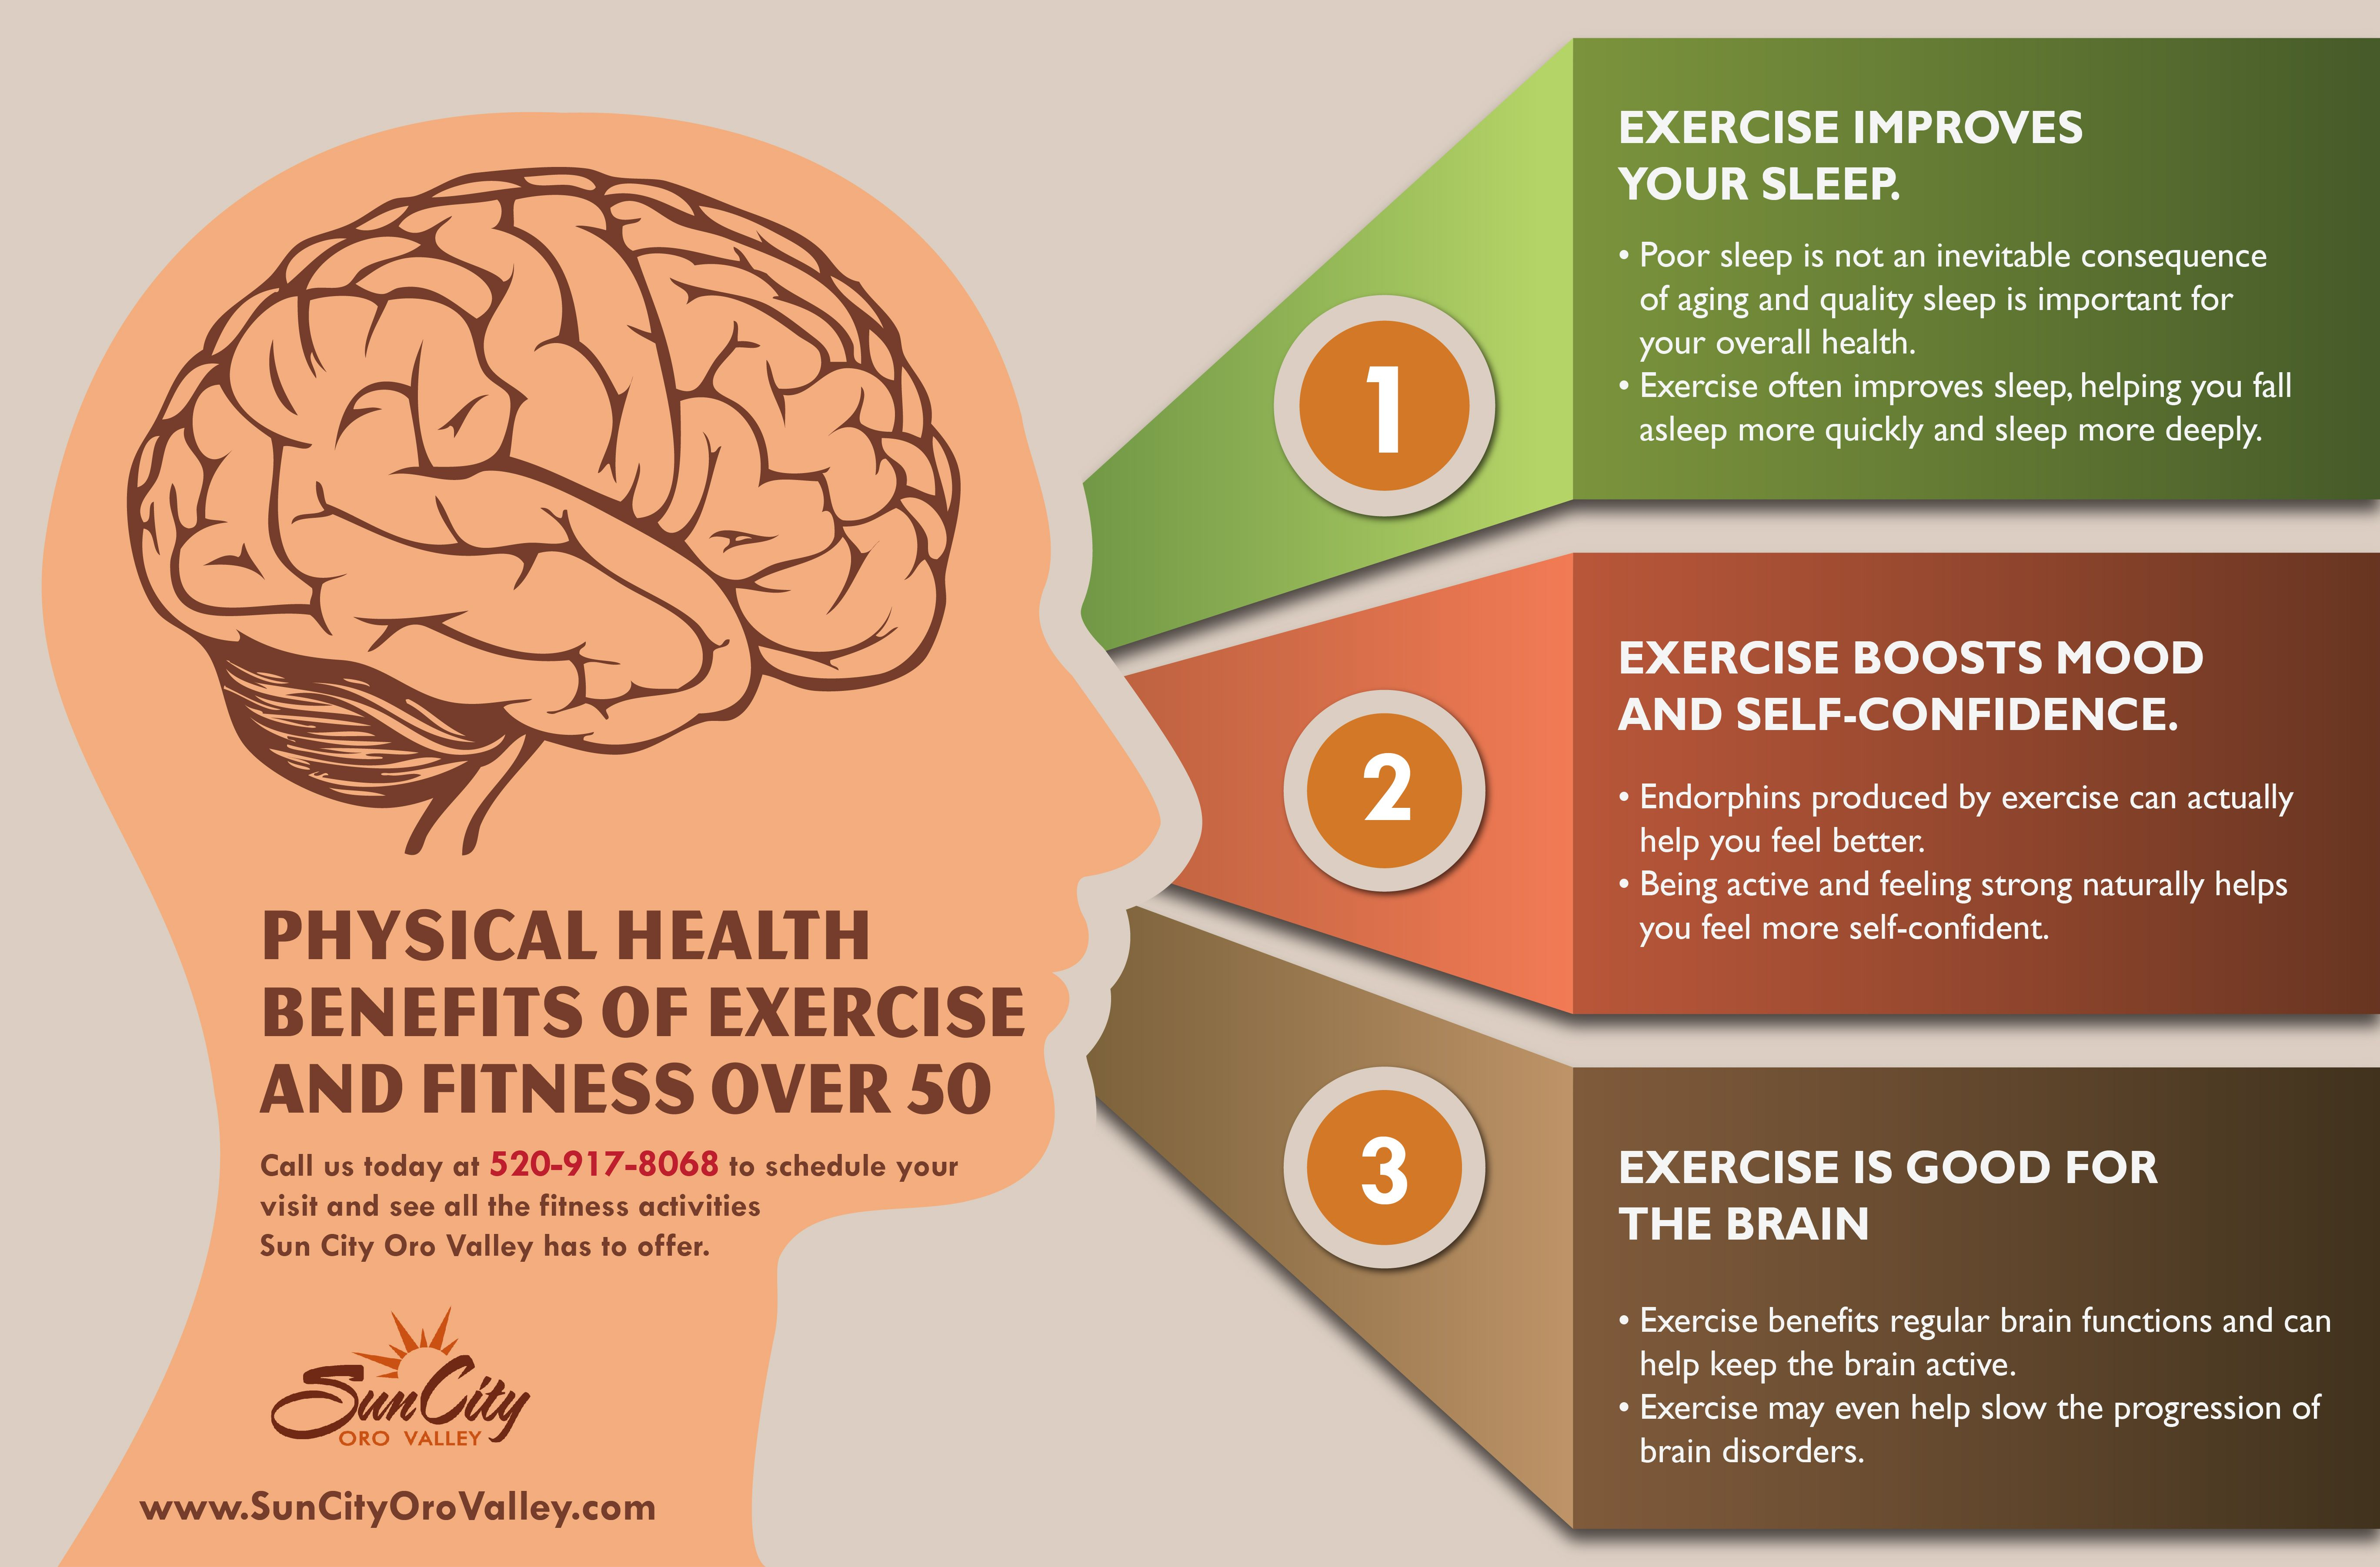 Mental Health Benefits of Exercise and Fitness Over 50 ...